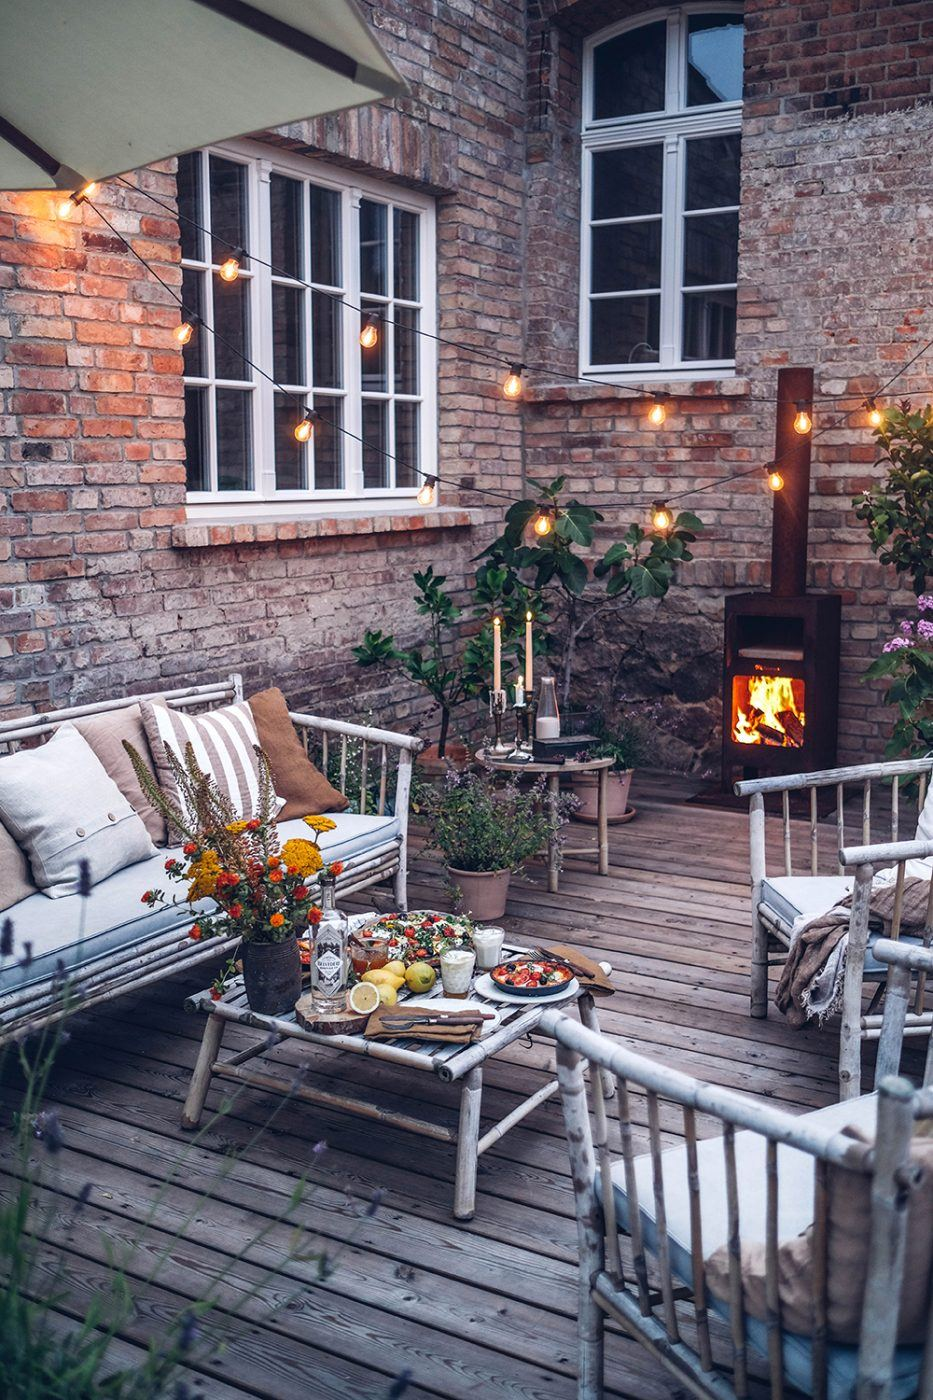 Image for A Summer Evening on the Terrace